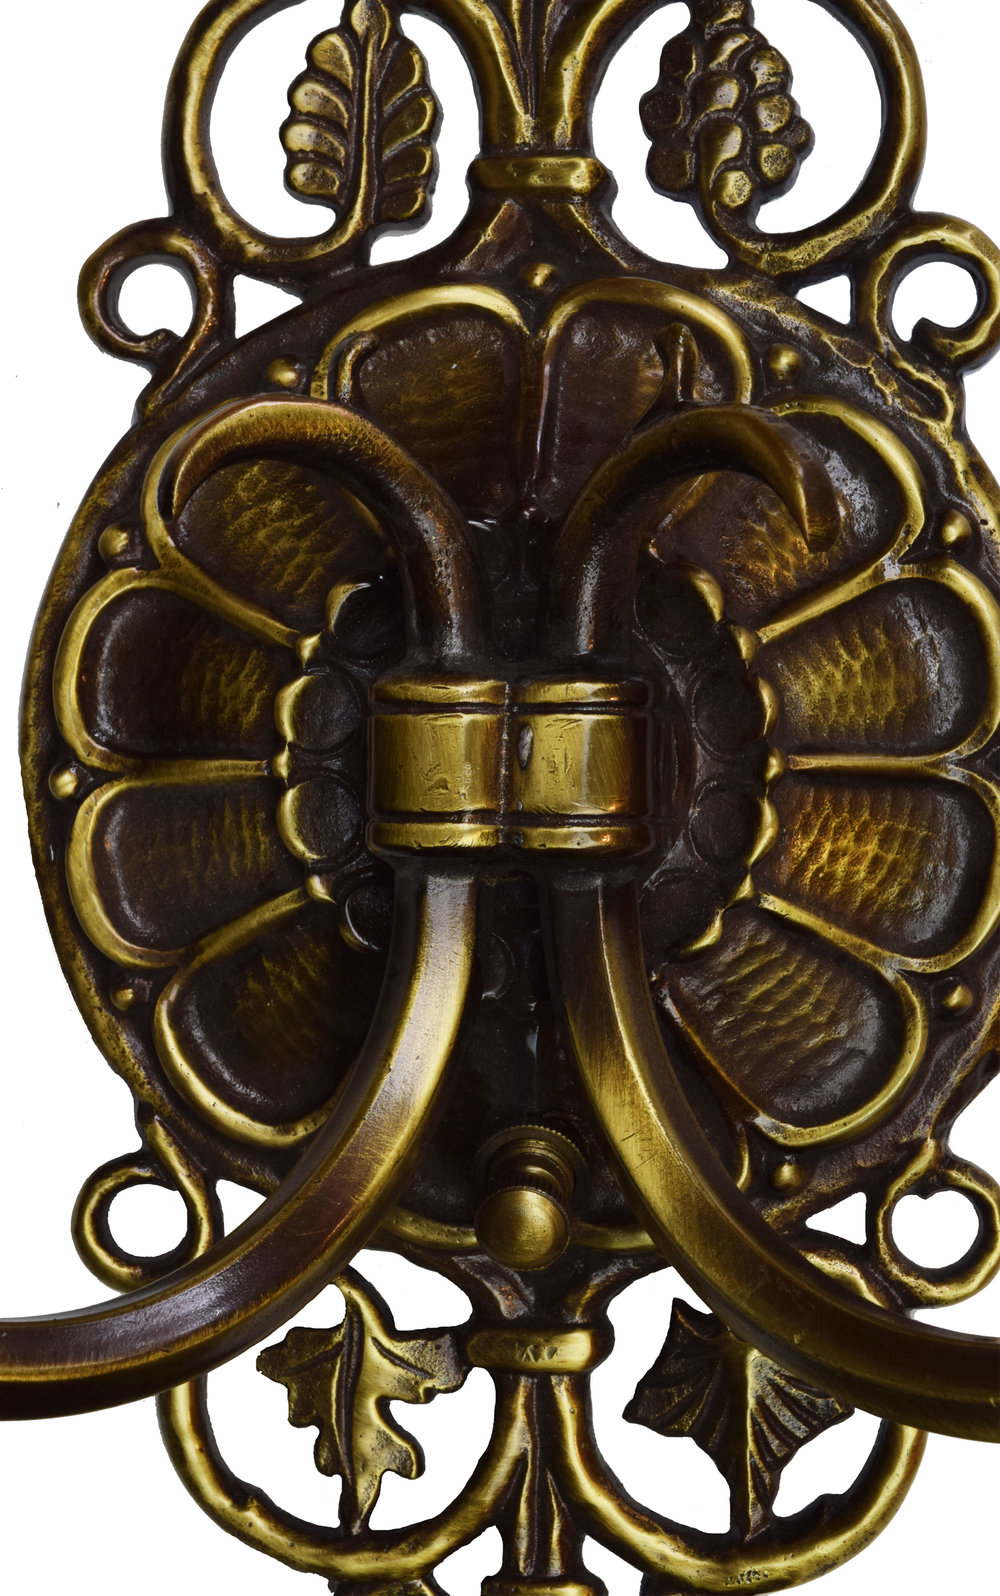 47017-oscar-bach-2-arm-sconce-center-detail.jpg